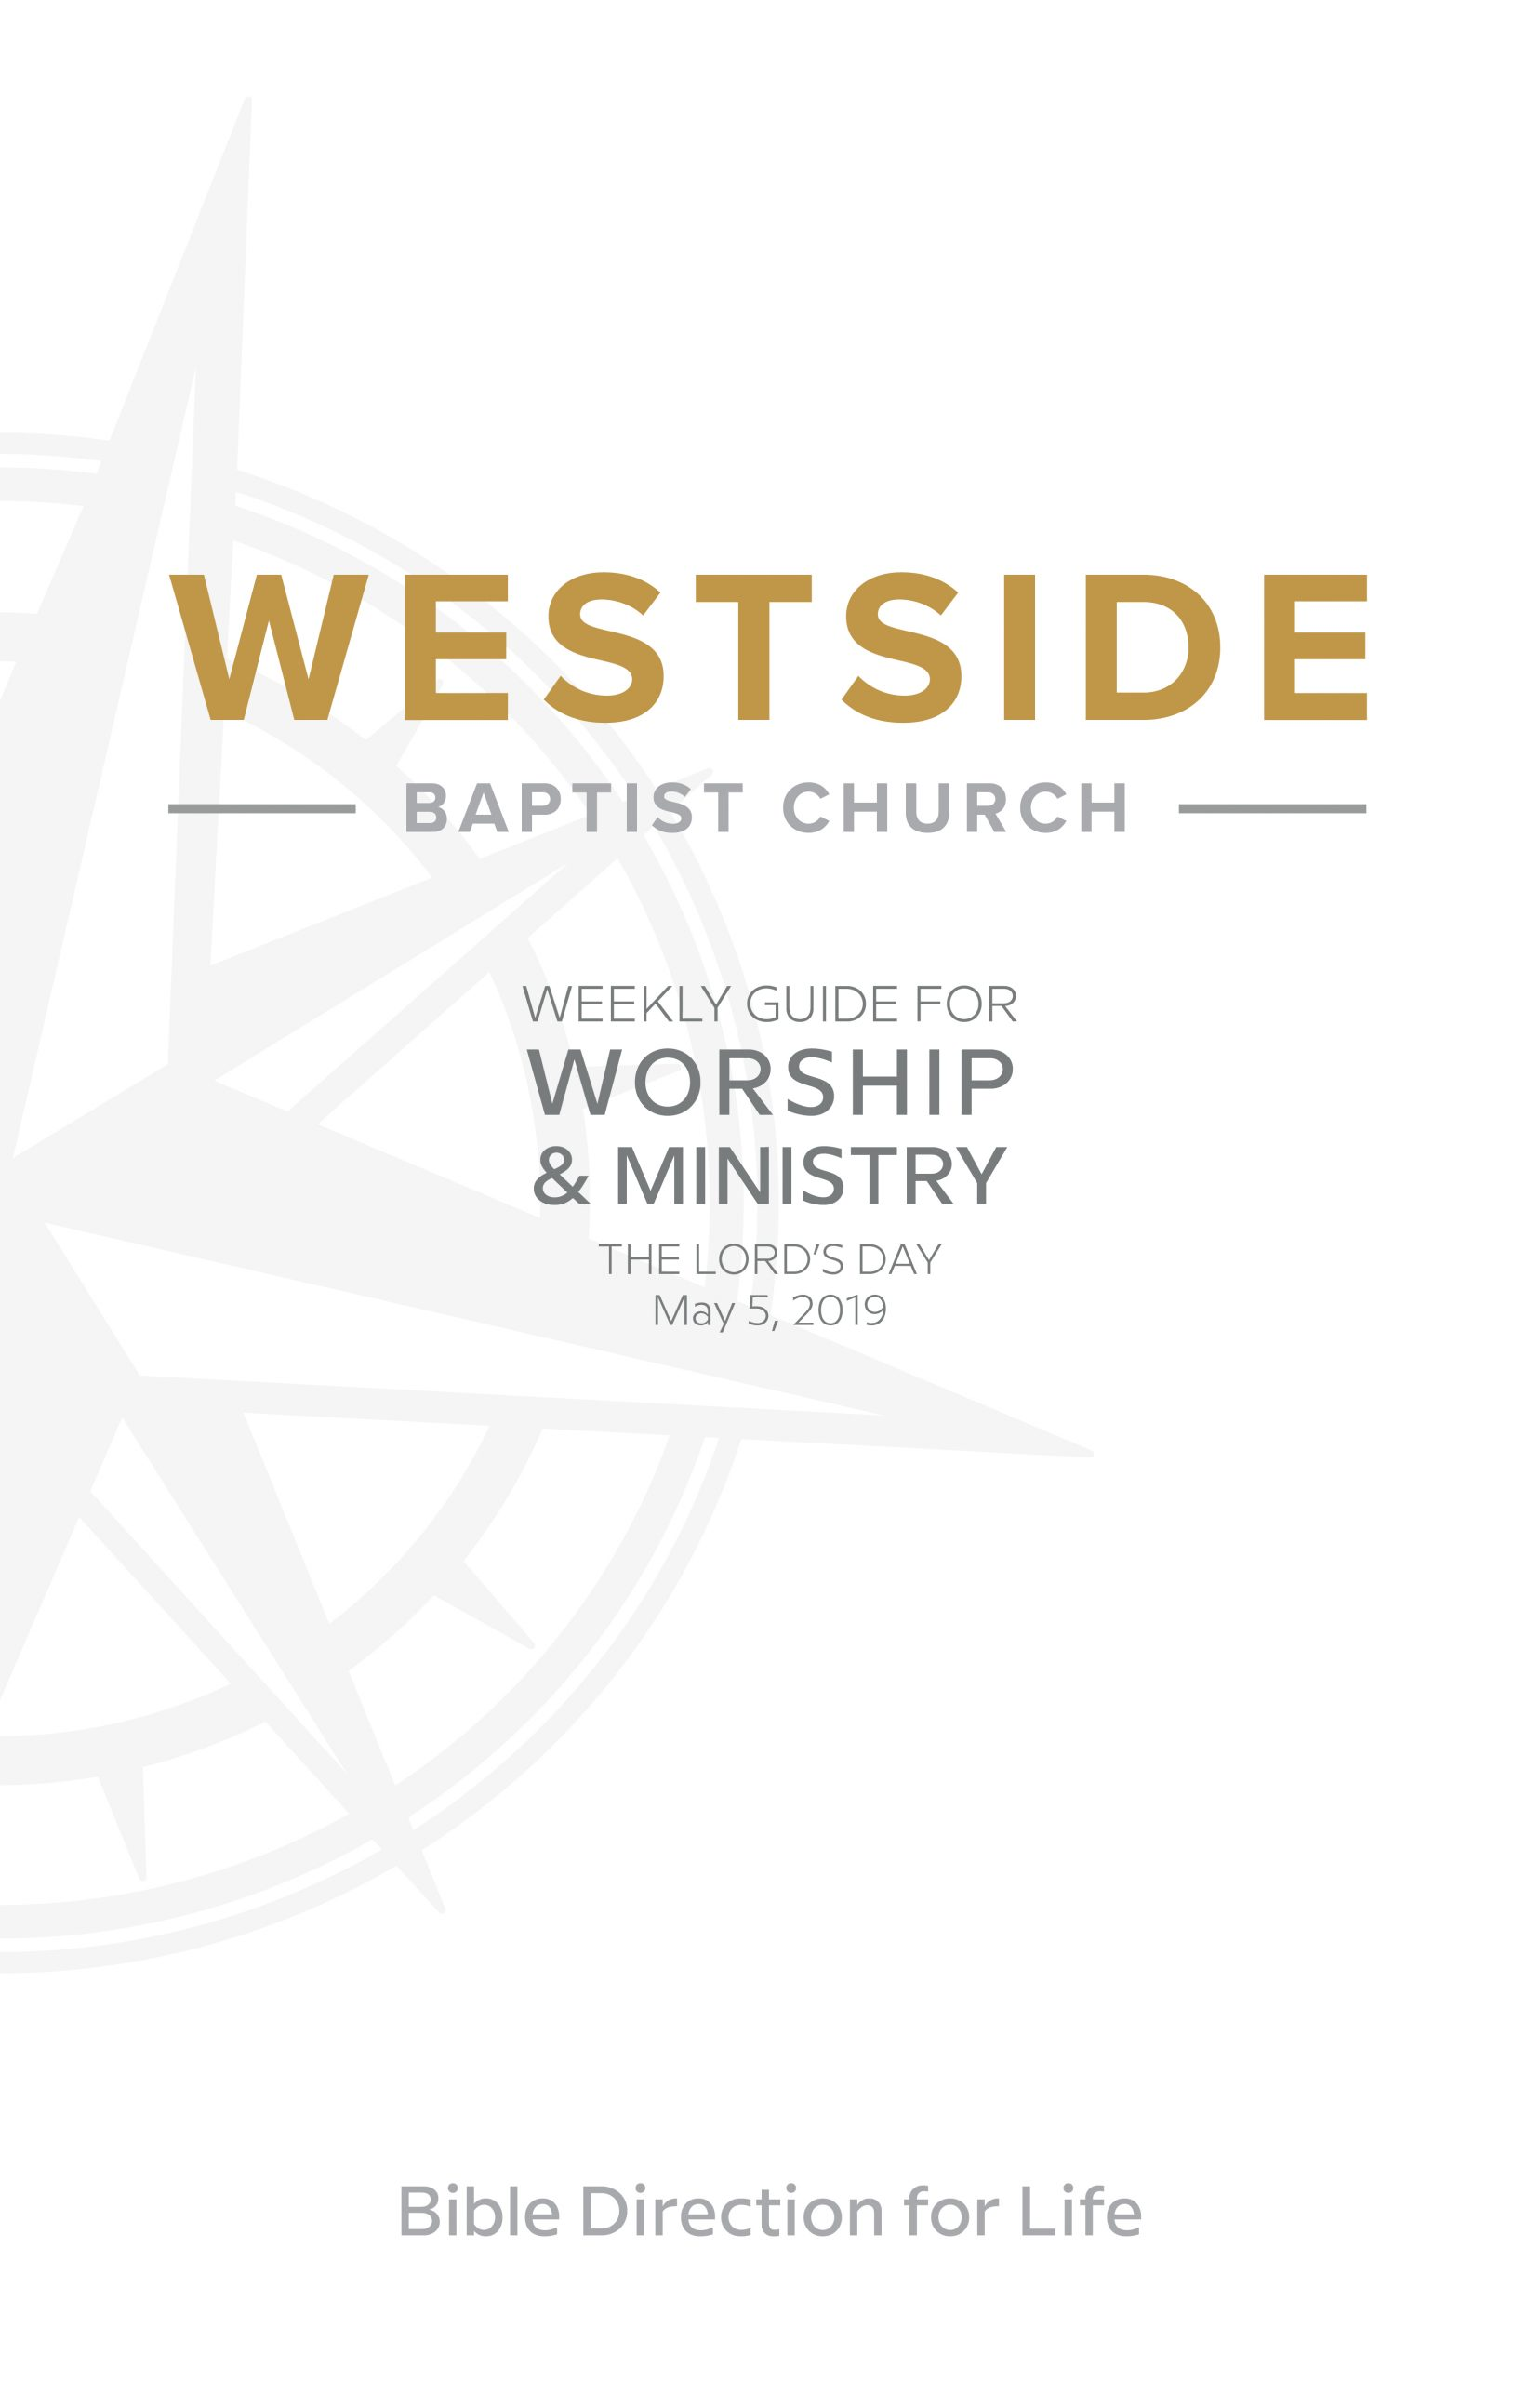 Weekly Guide for Worship and Ministry—May 5